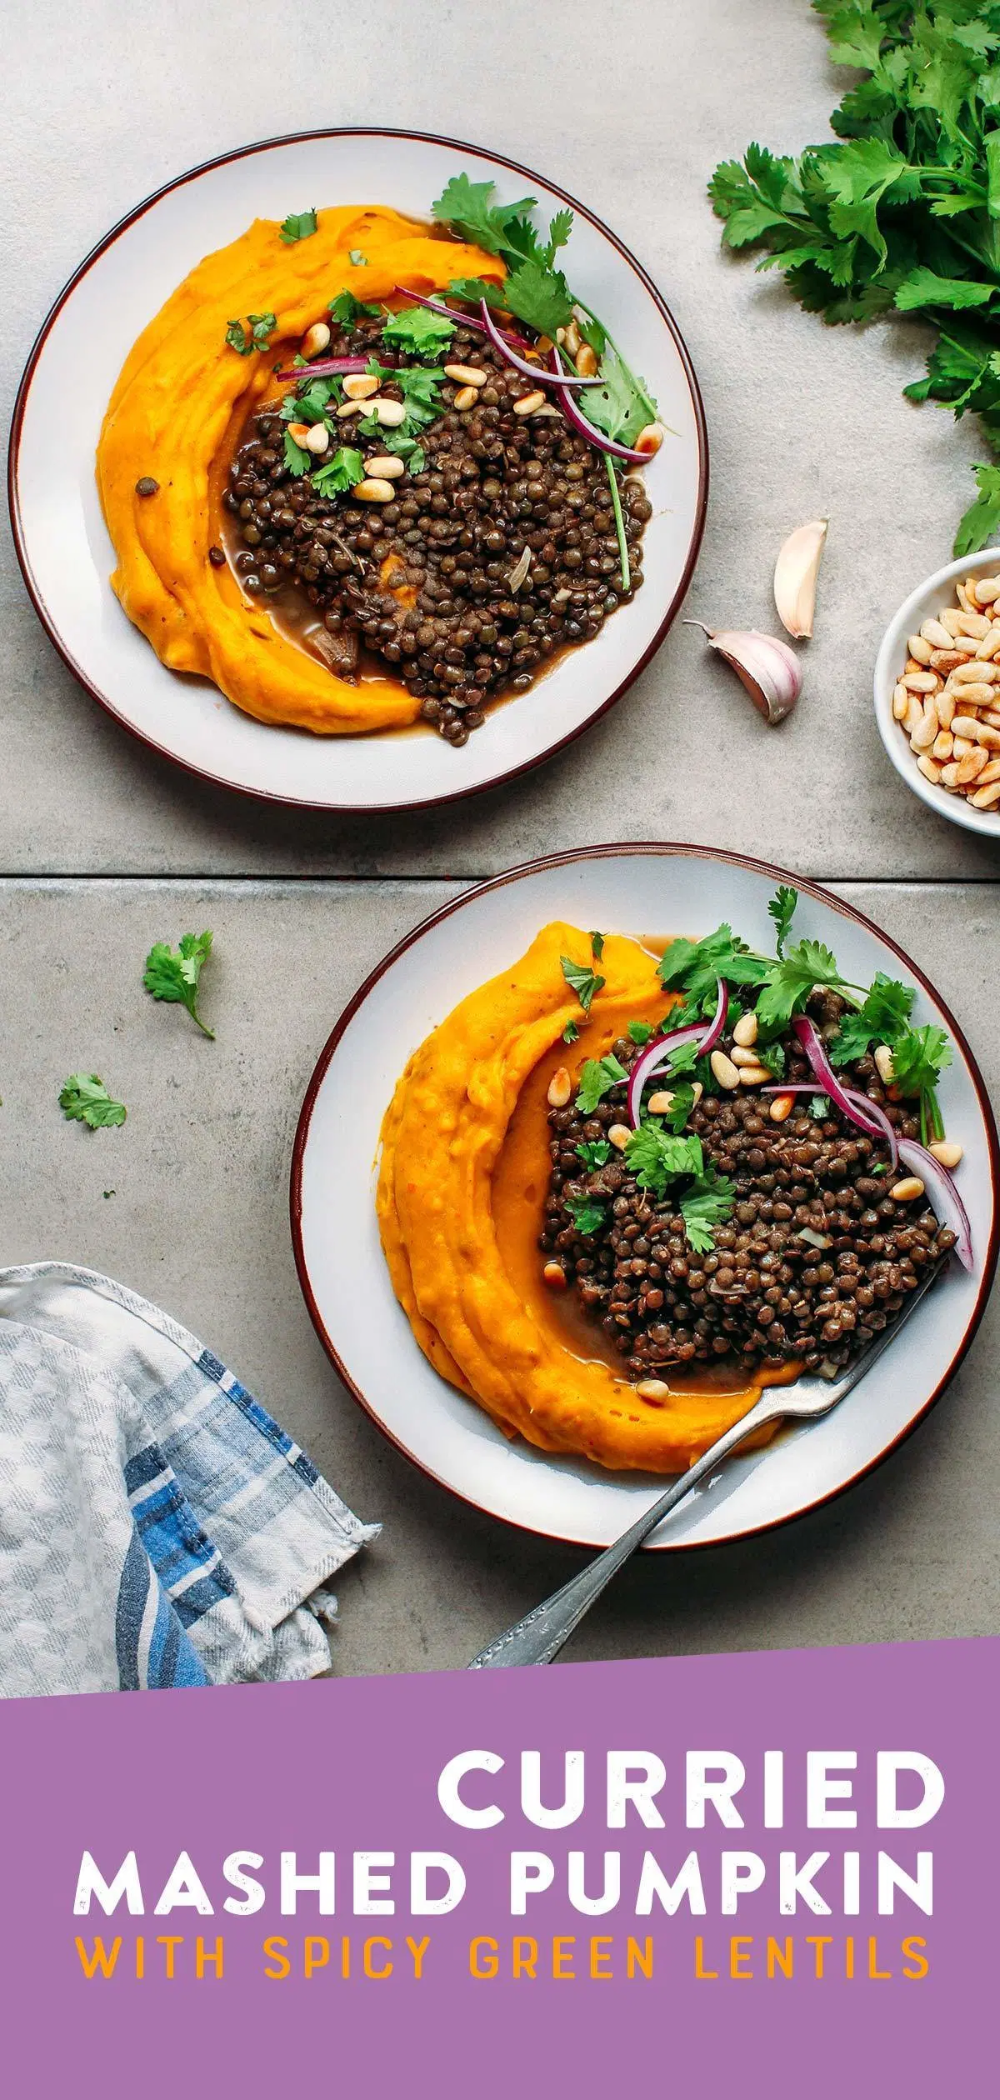 Curried Mashed Pumpkin with Spicy Green Lentils - Full of Plants